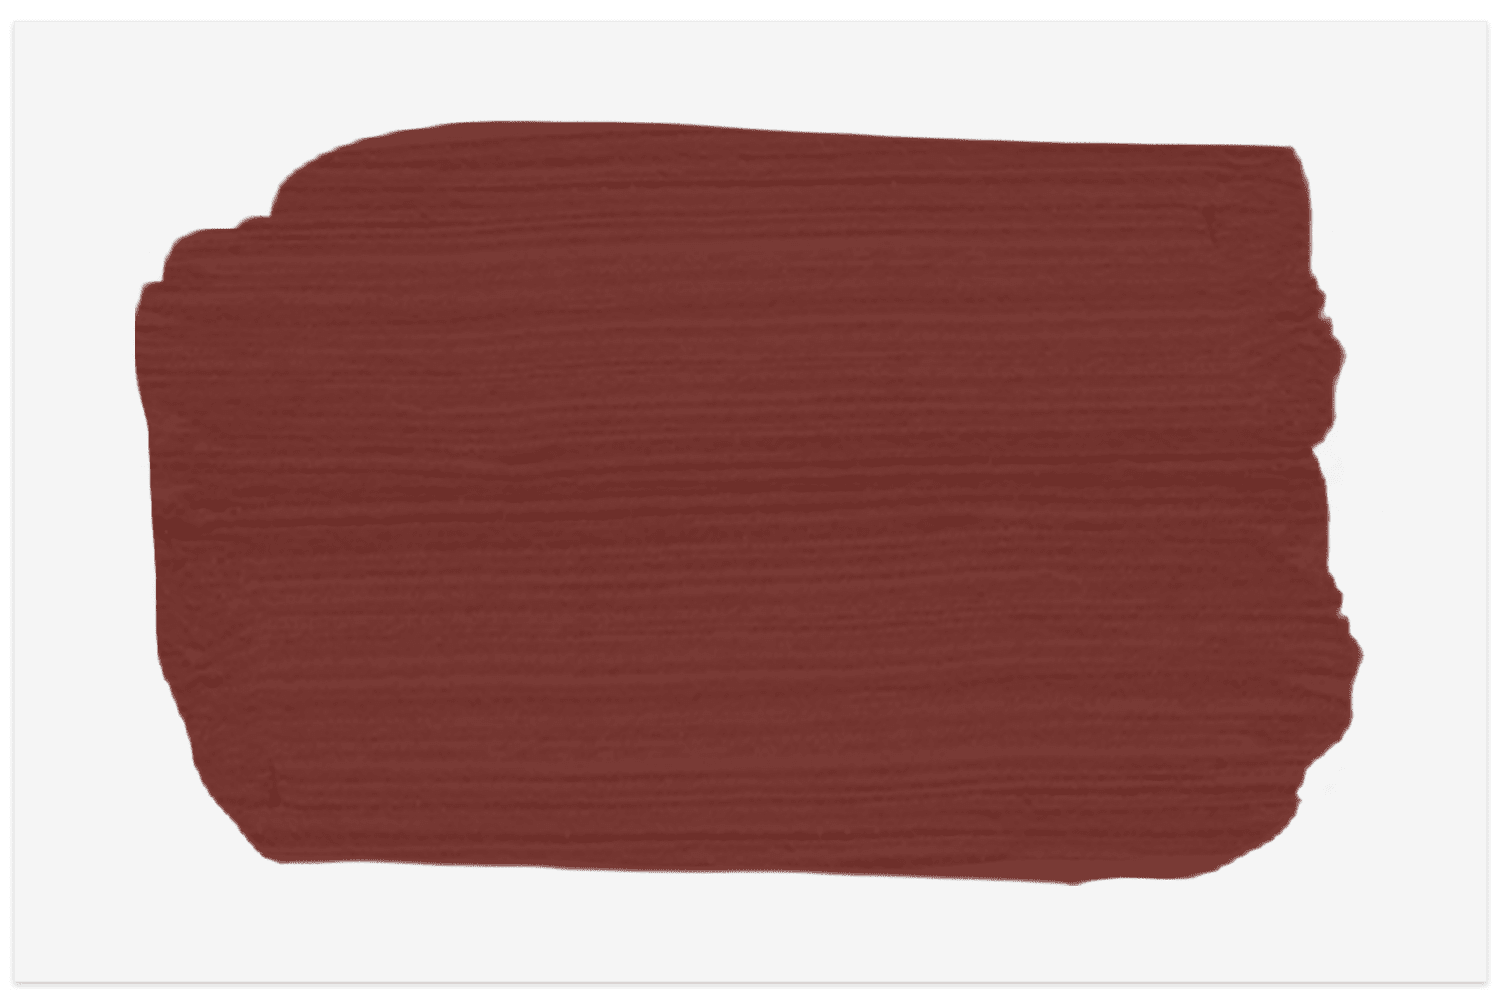 Swatch in Sundried Tomato by Benjamin Moore